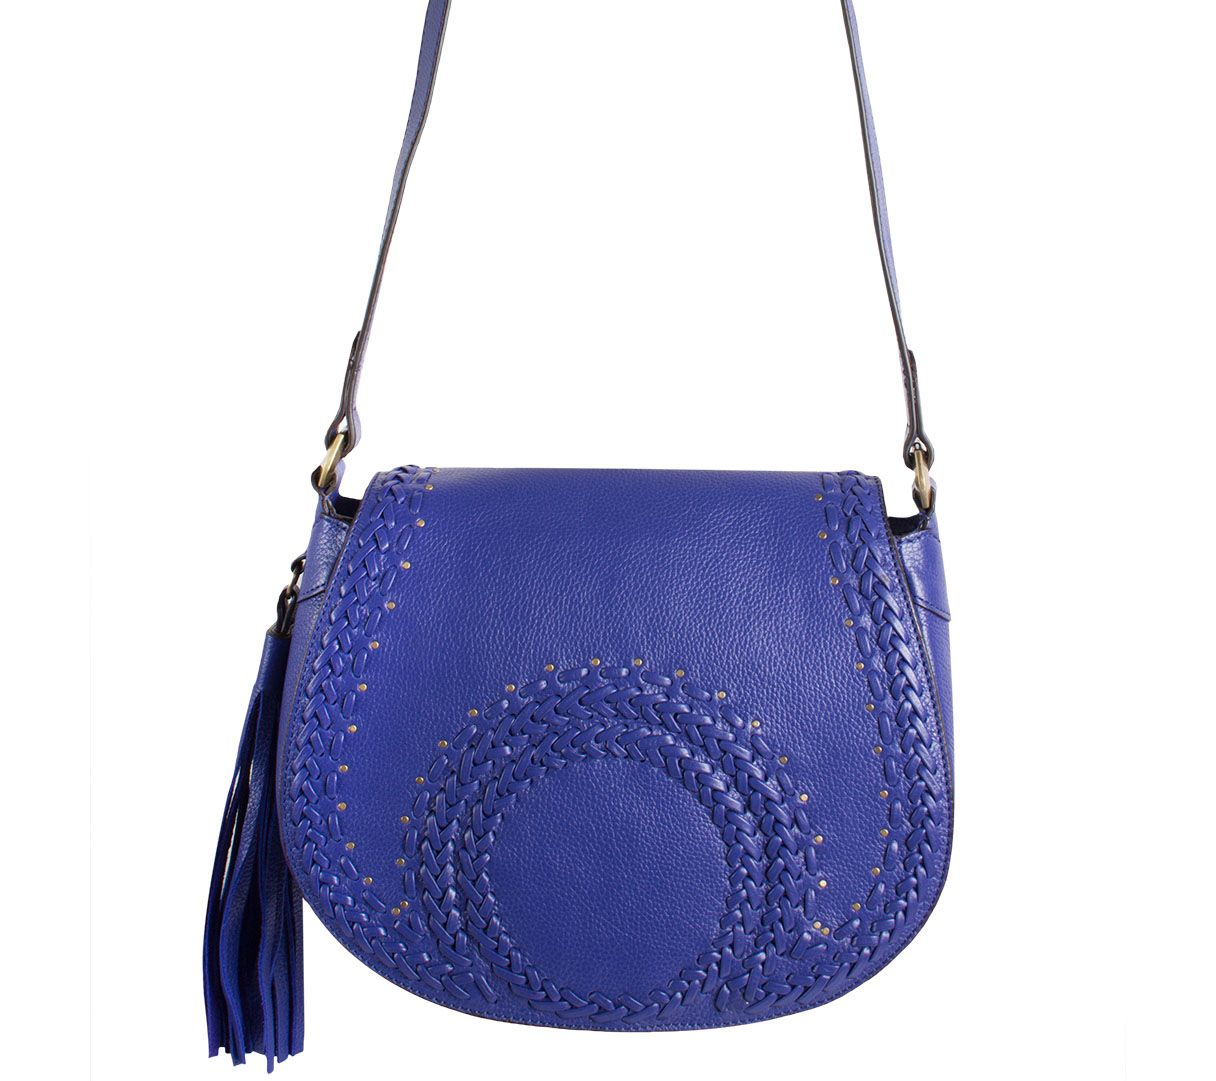 dd4b6d4dea09 orYANY Pebbled Leather Saddle Bag w  Whipstitch Detail - Nikita - Page 1 —  QVC.com